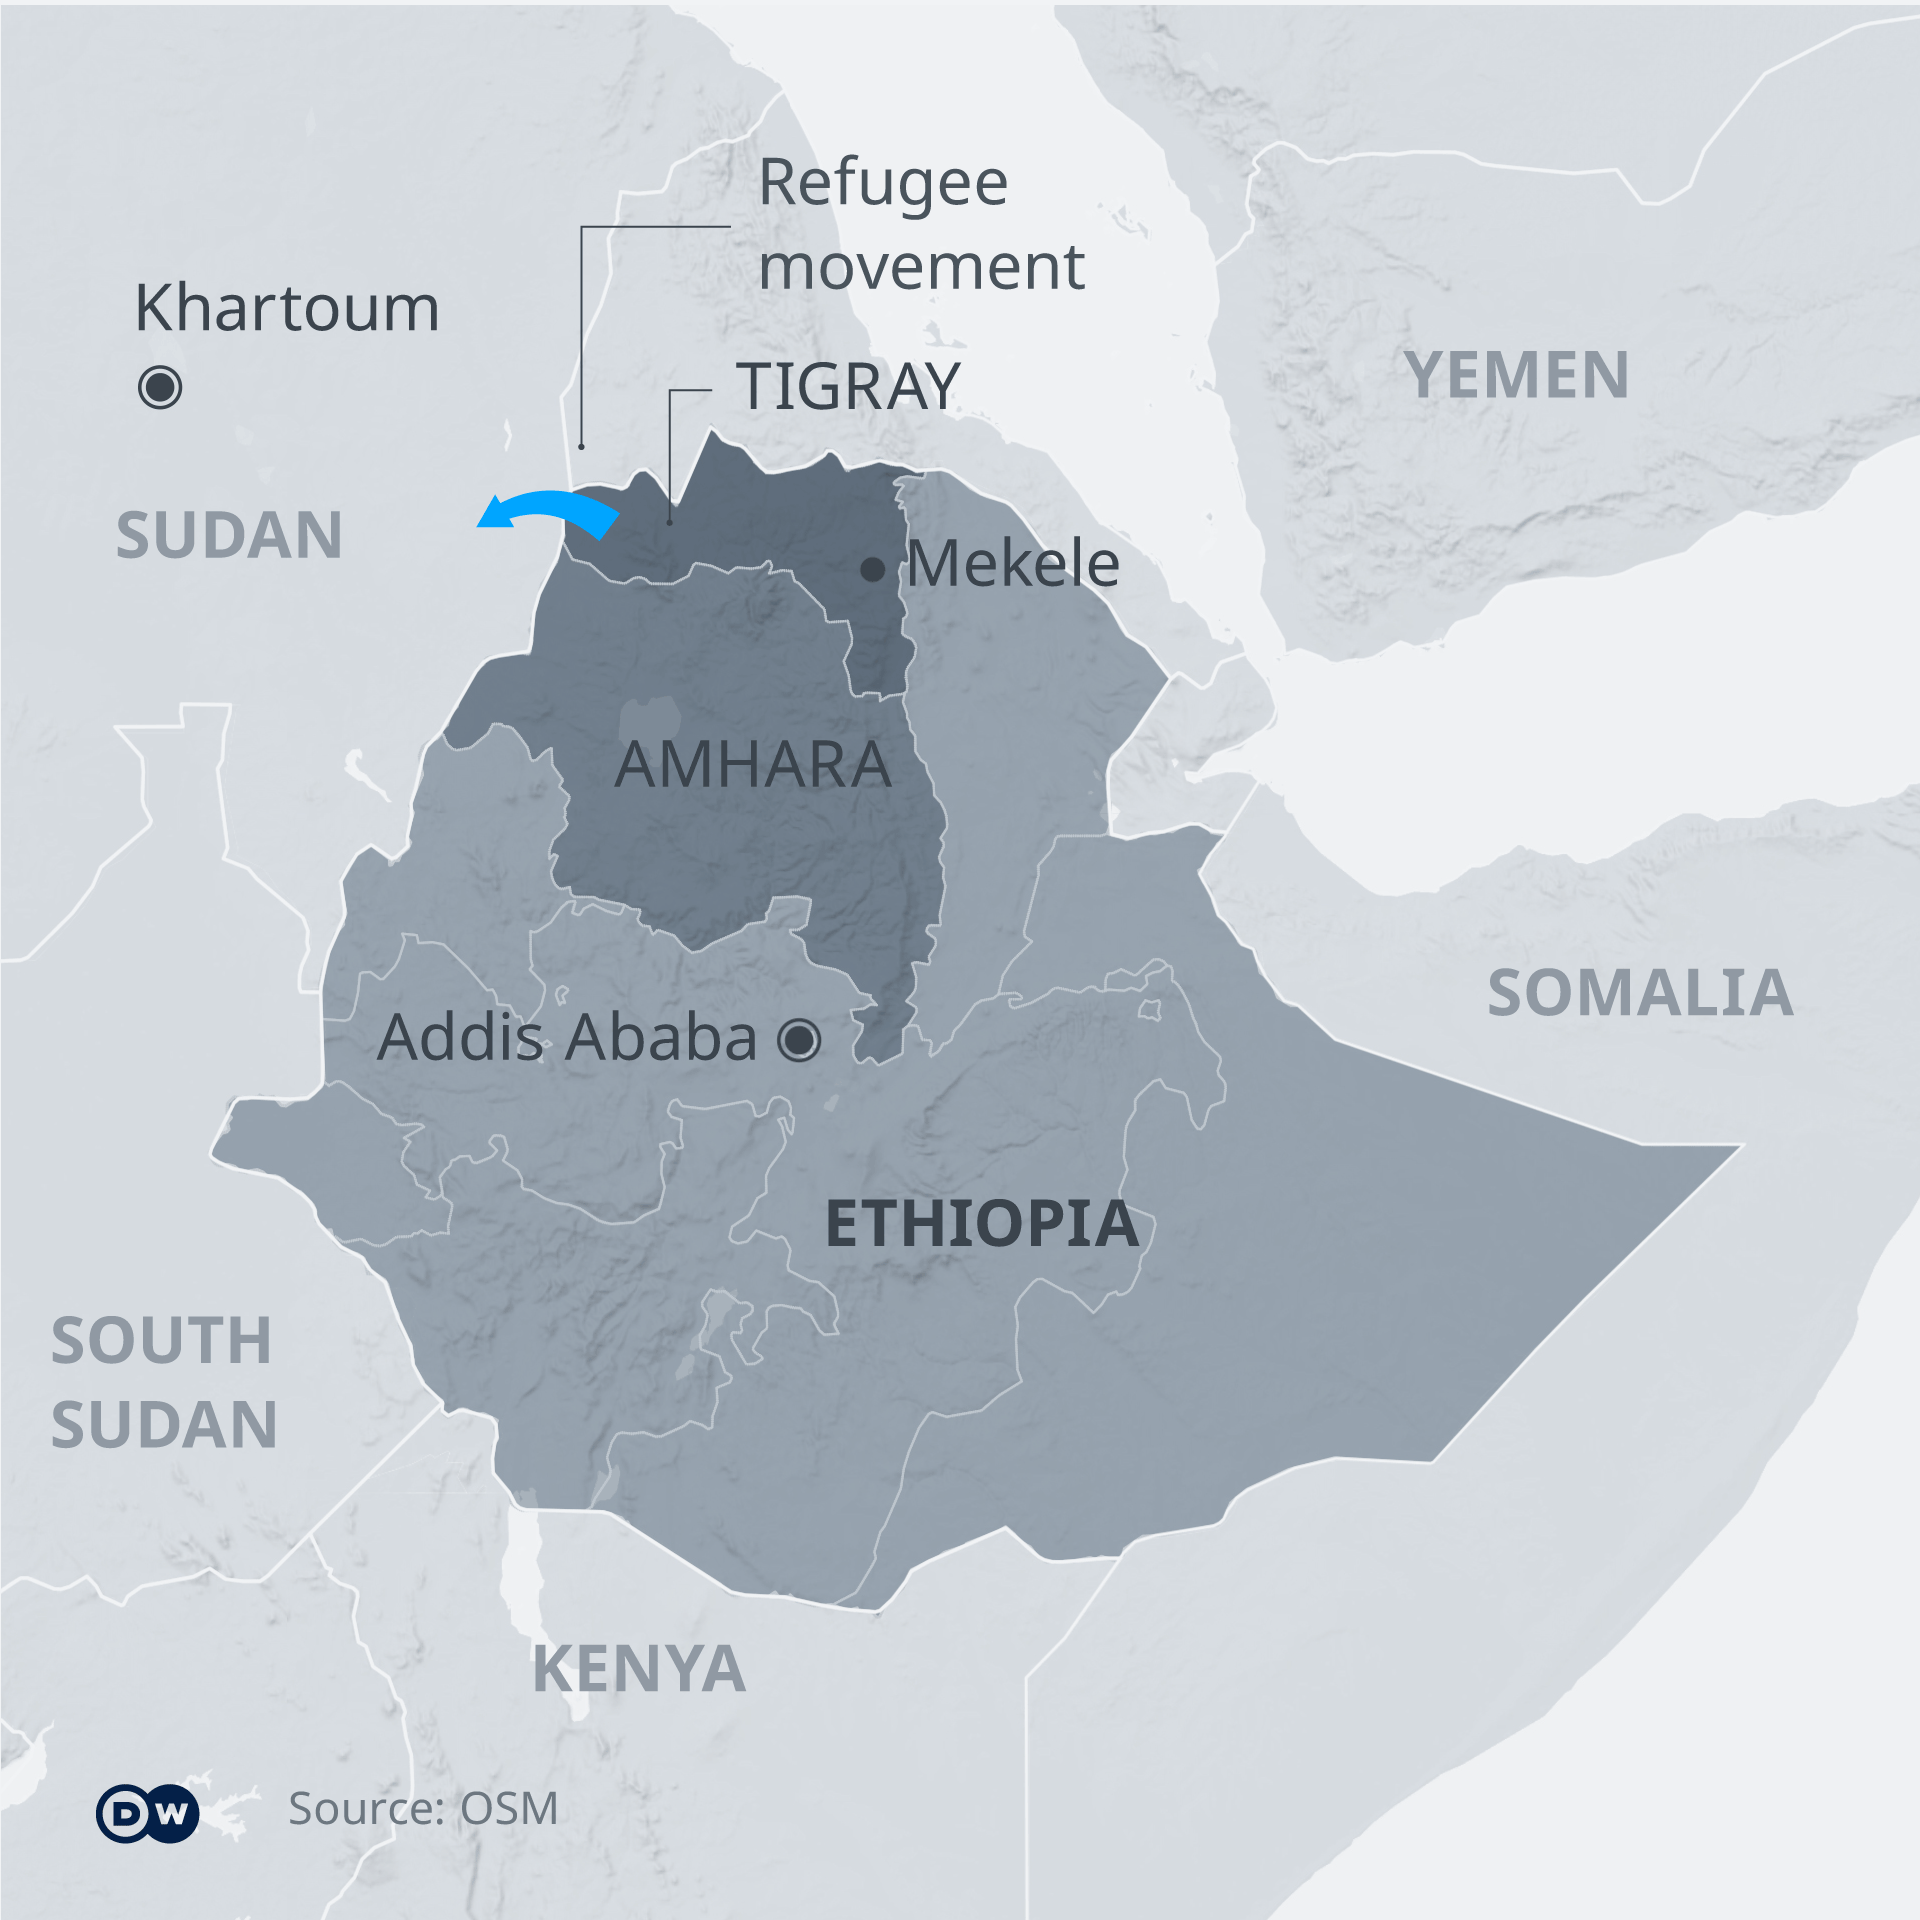 An infographic showing Tigray's location in the north of Ethiopia